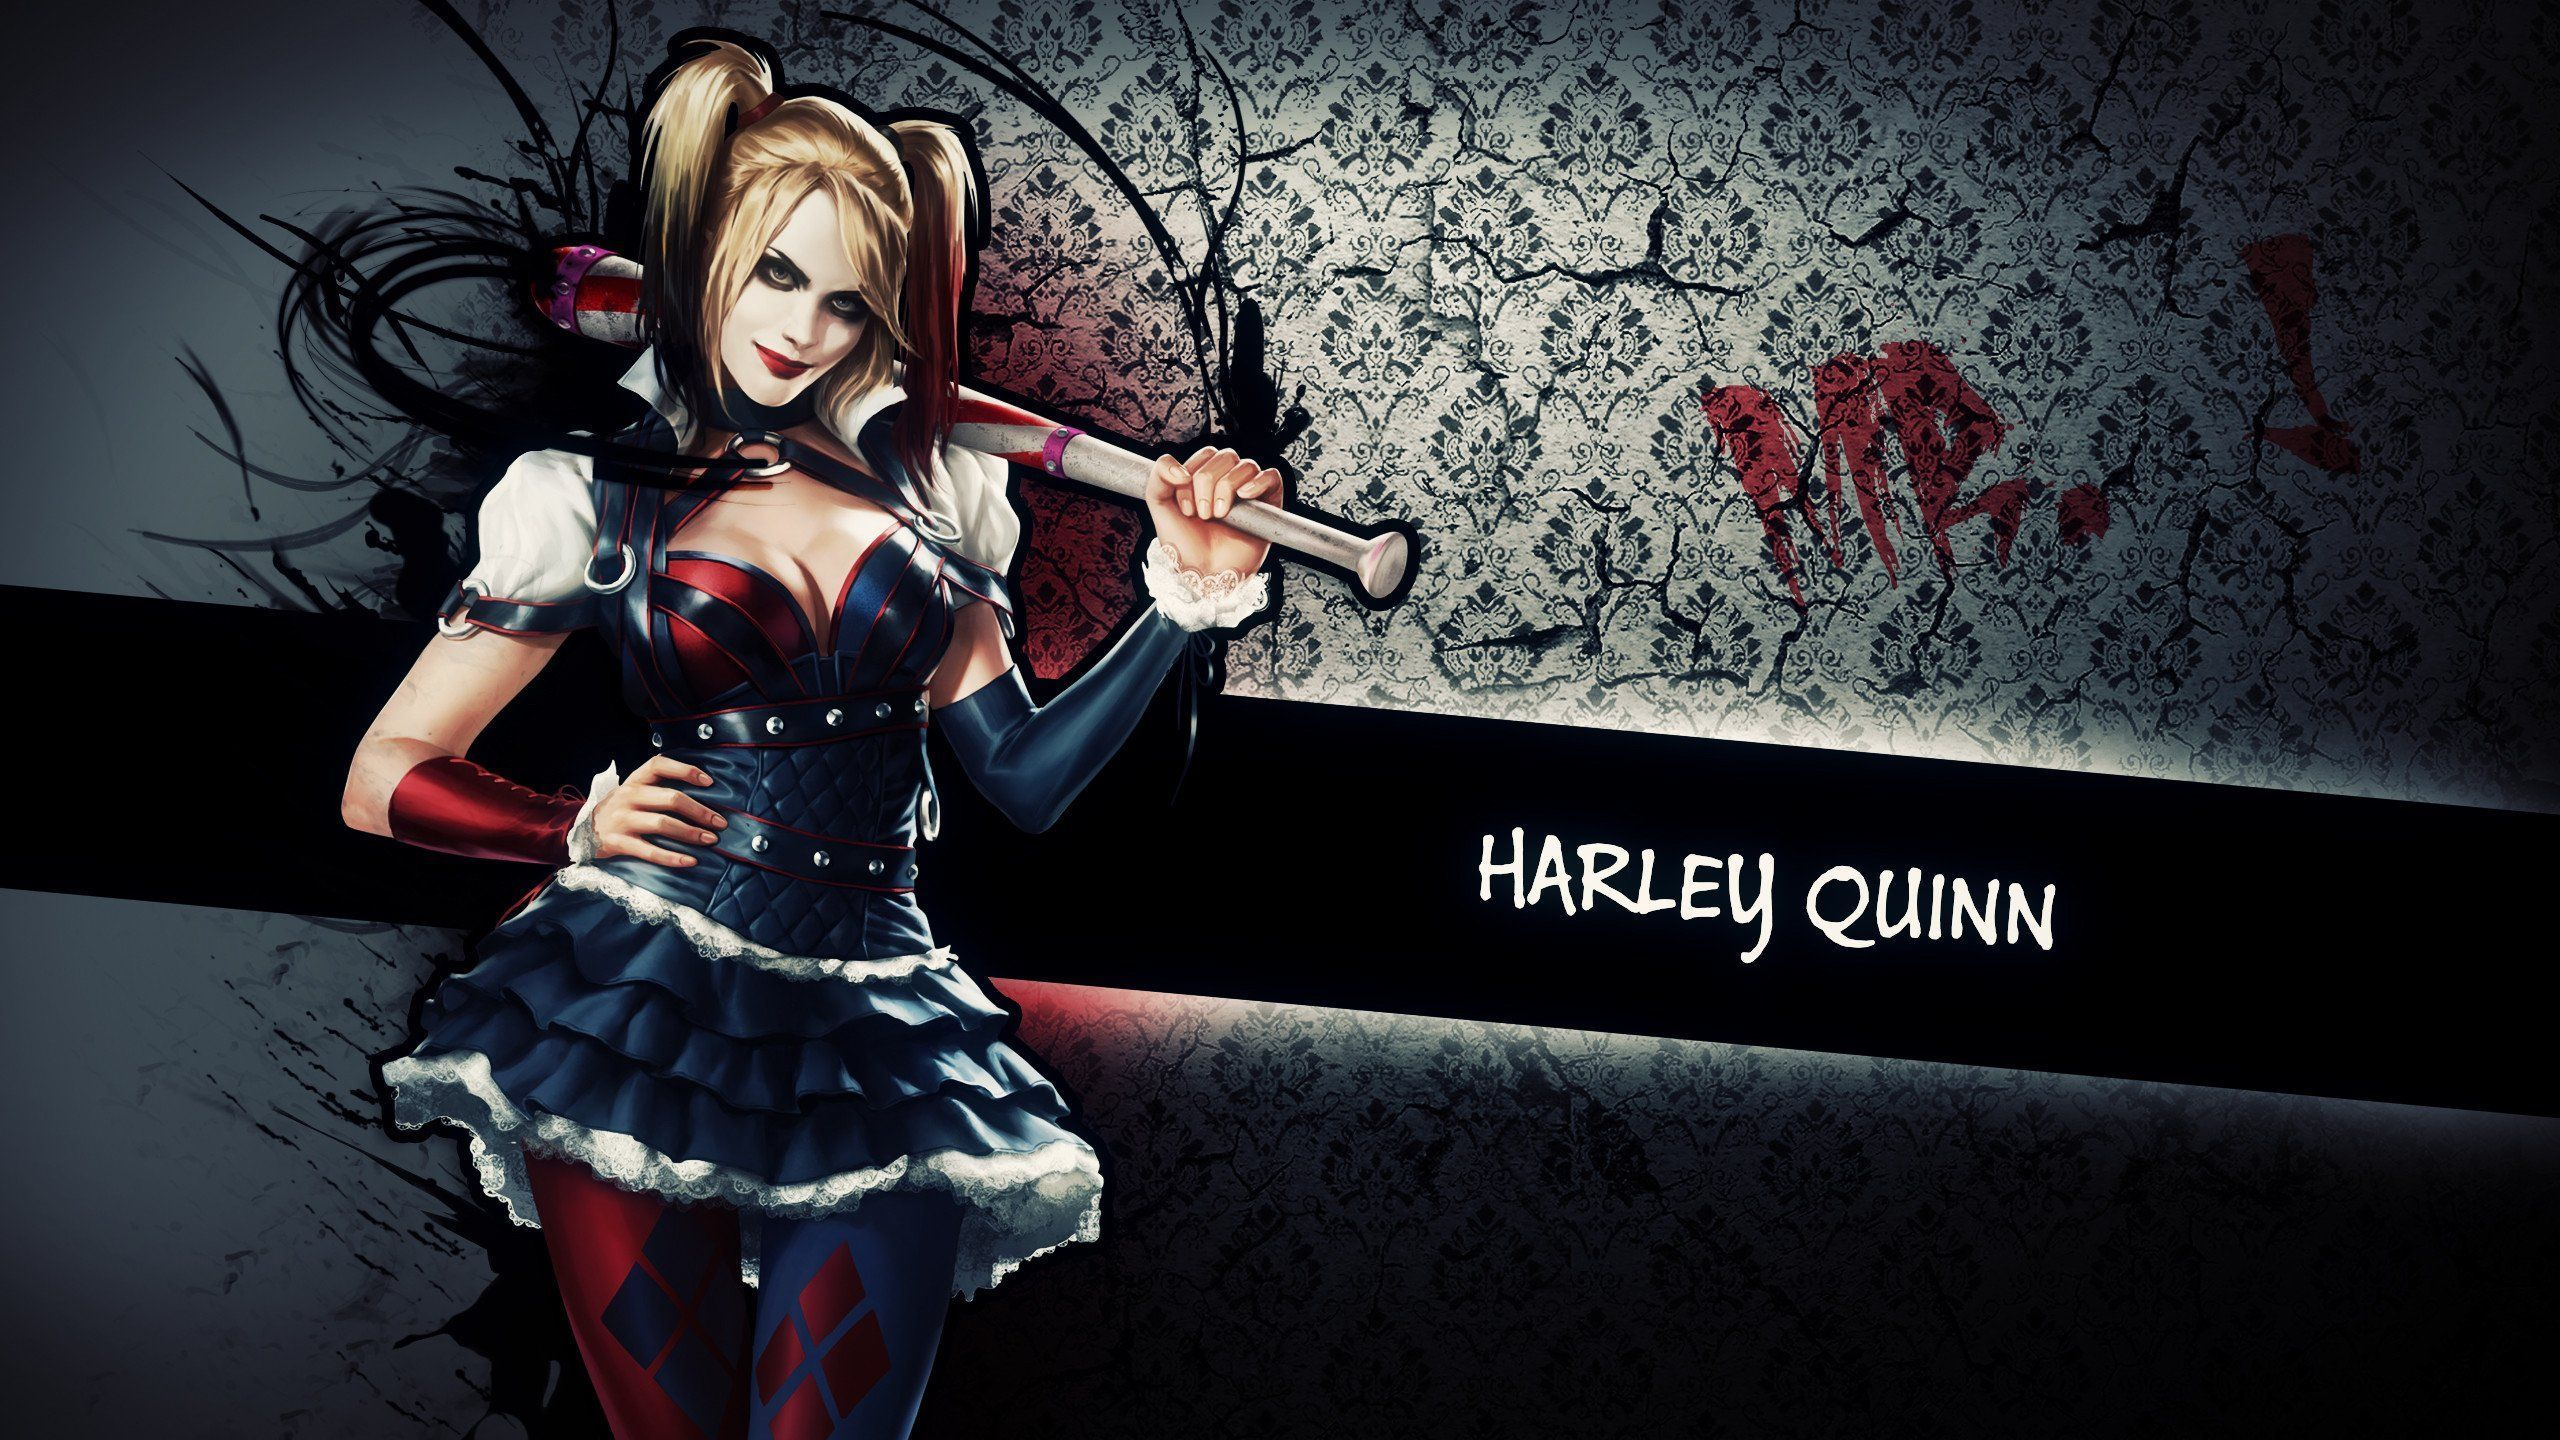 For the wallpaper harley quinn pussy remarkable, this valuable